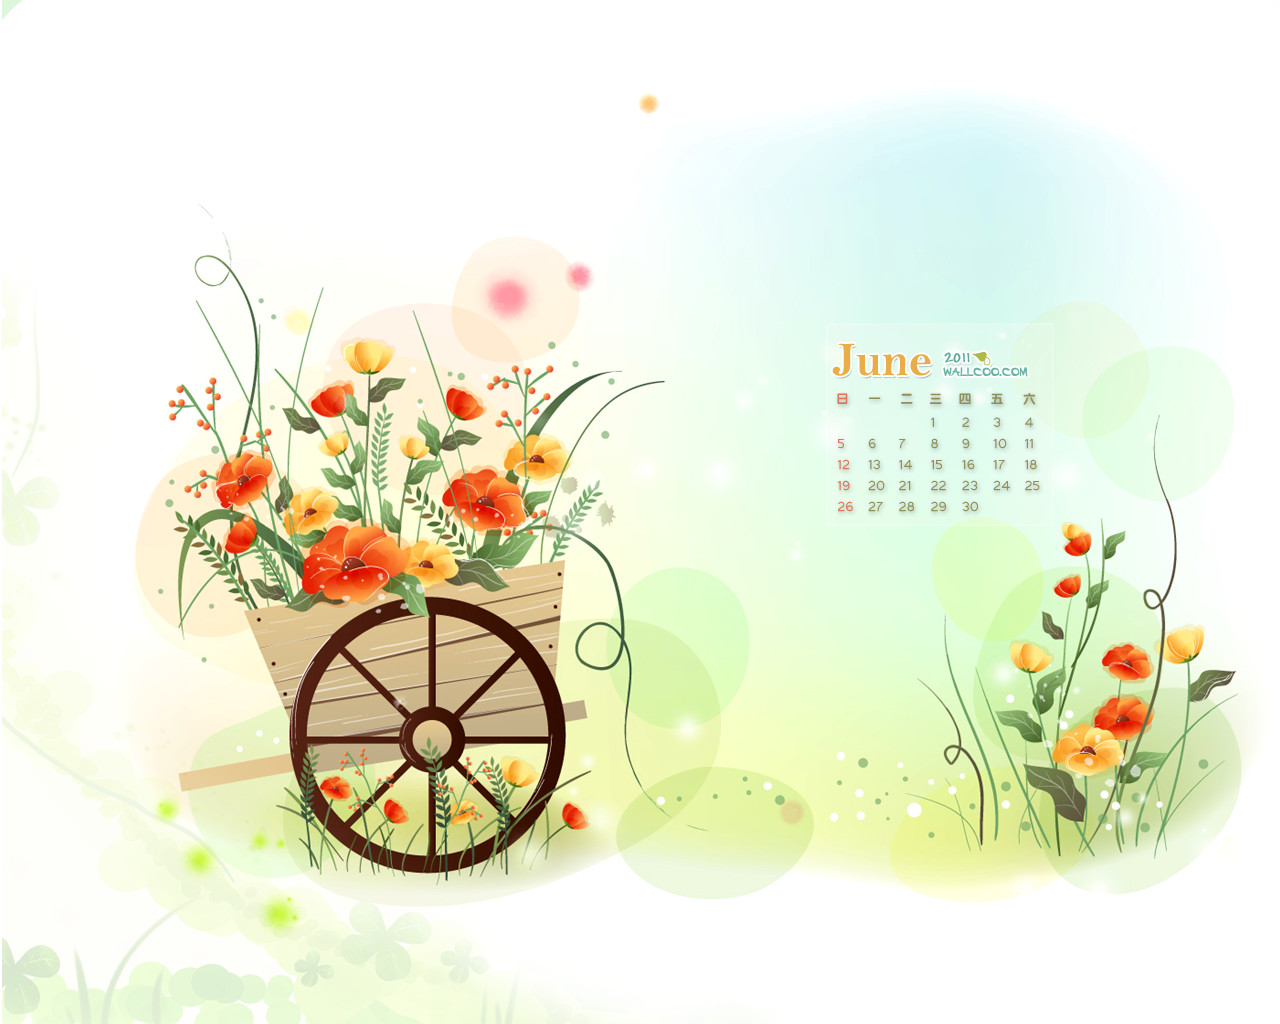 In January Calendar Wallpaper 29678